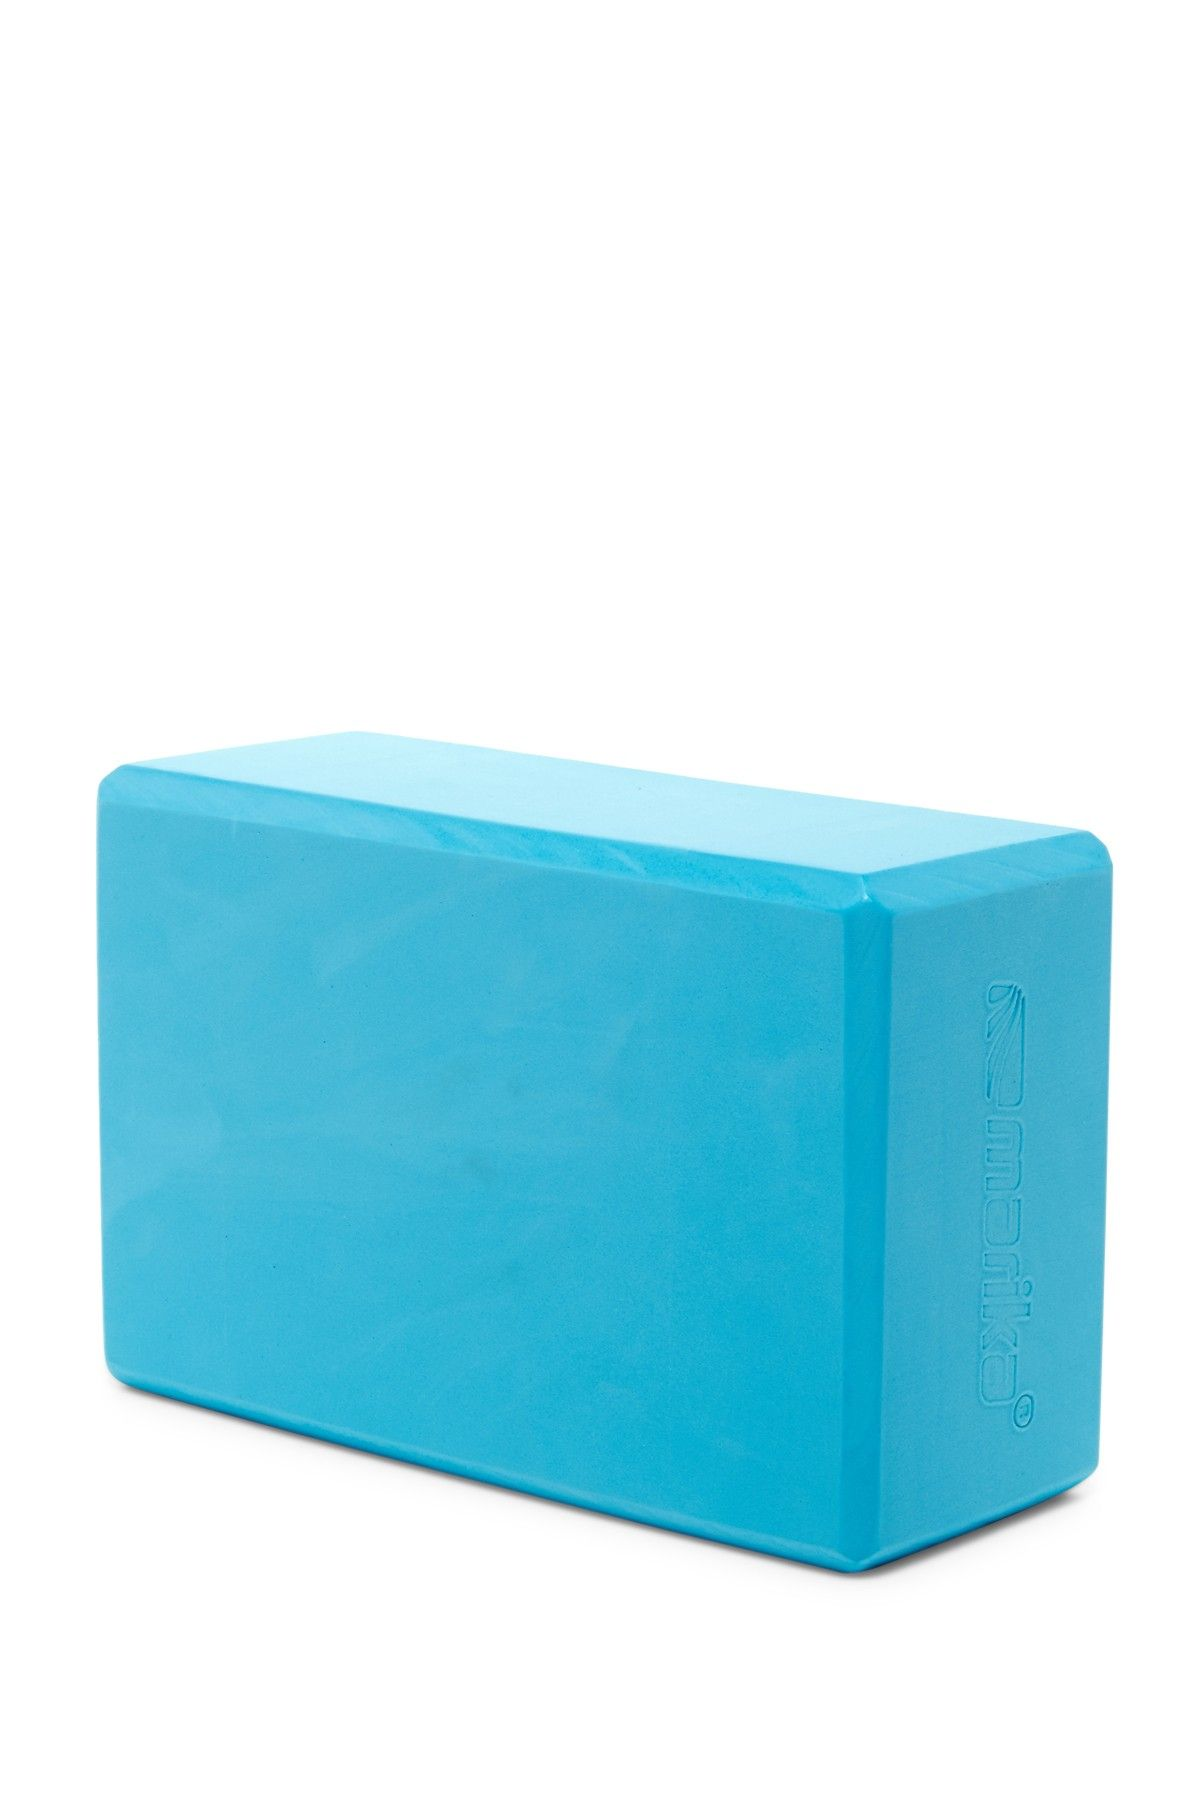 Solid Yoga Block